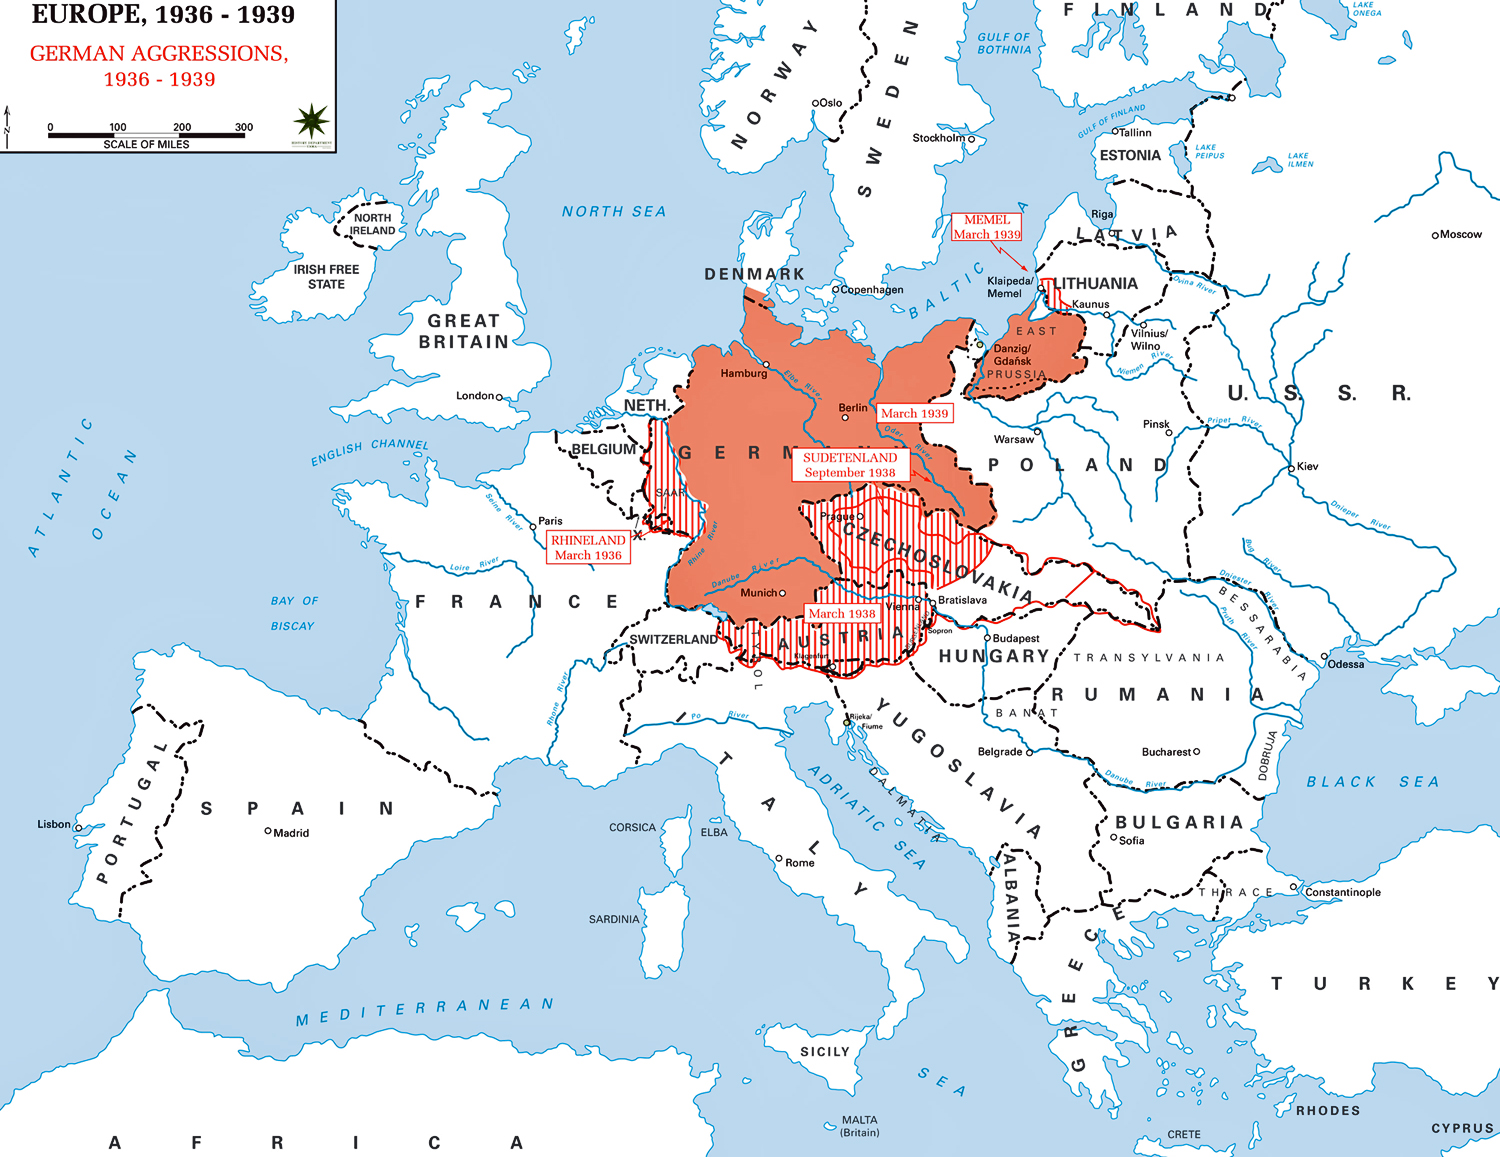 Map of europe 1936 1939 map of europe 1936 1939 german aggressions gumiabroncs Gallery